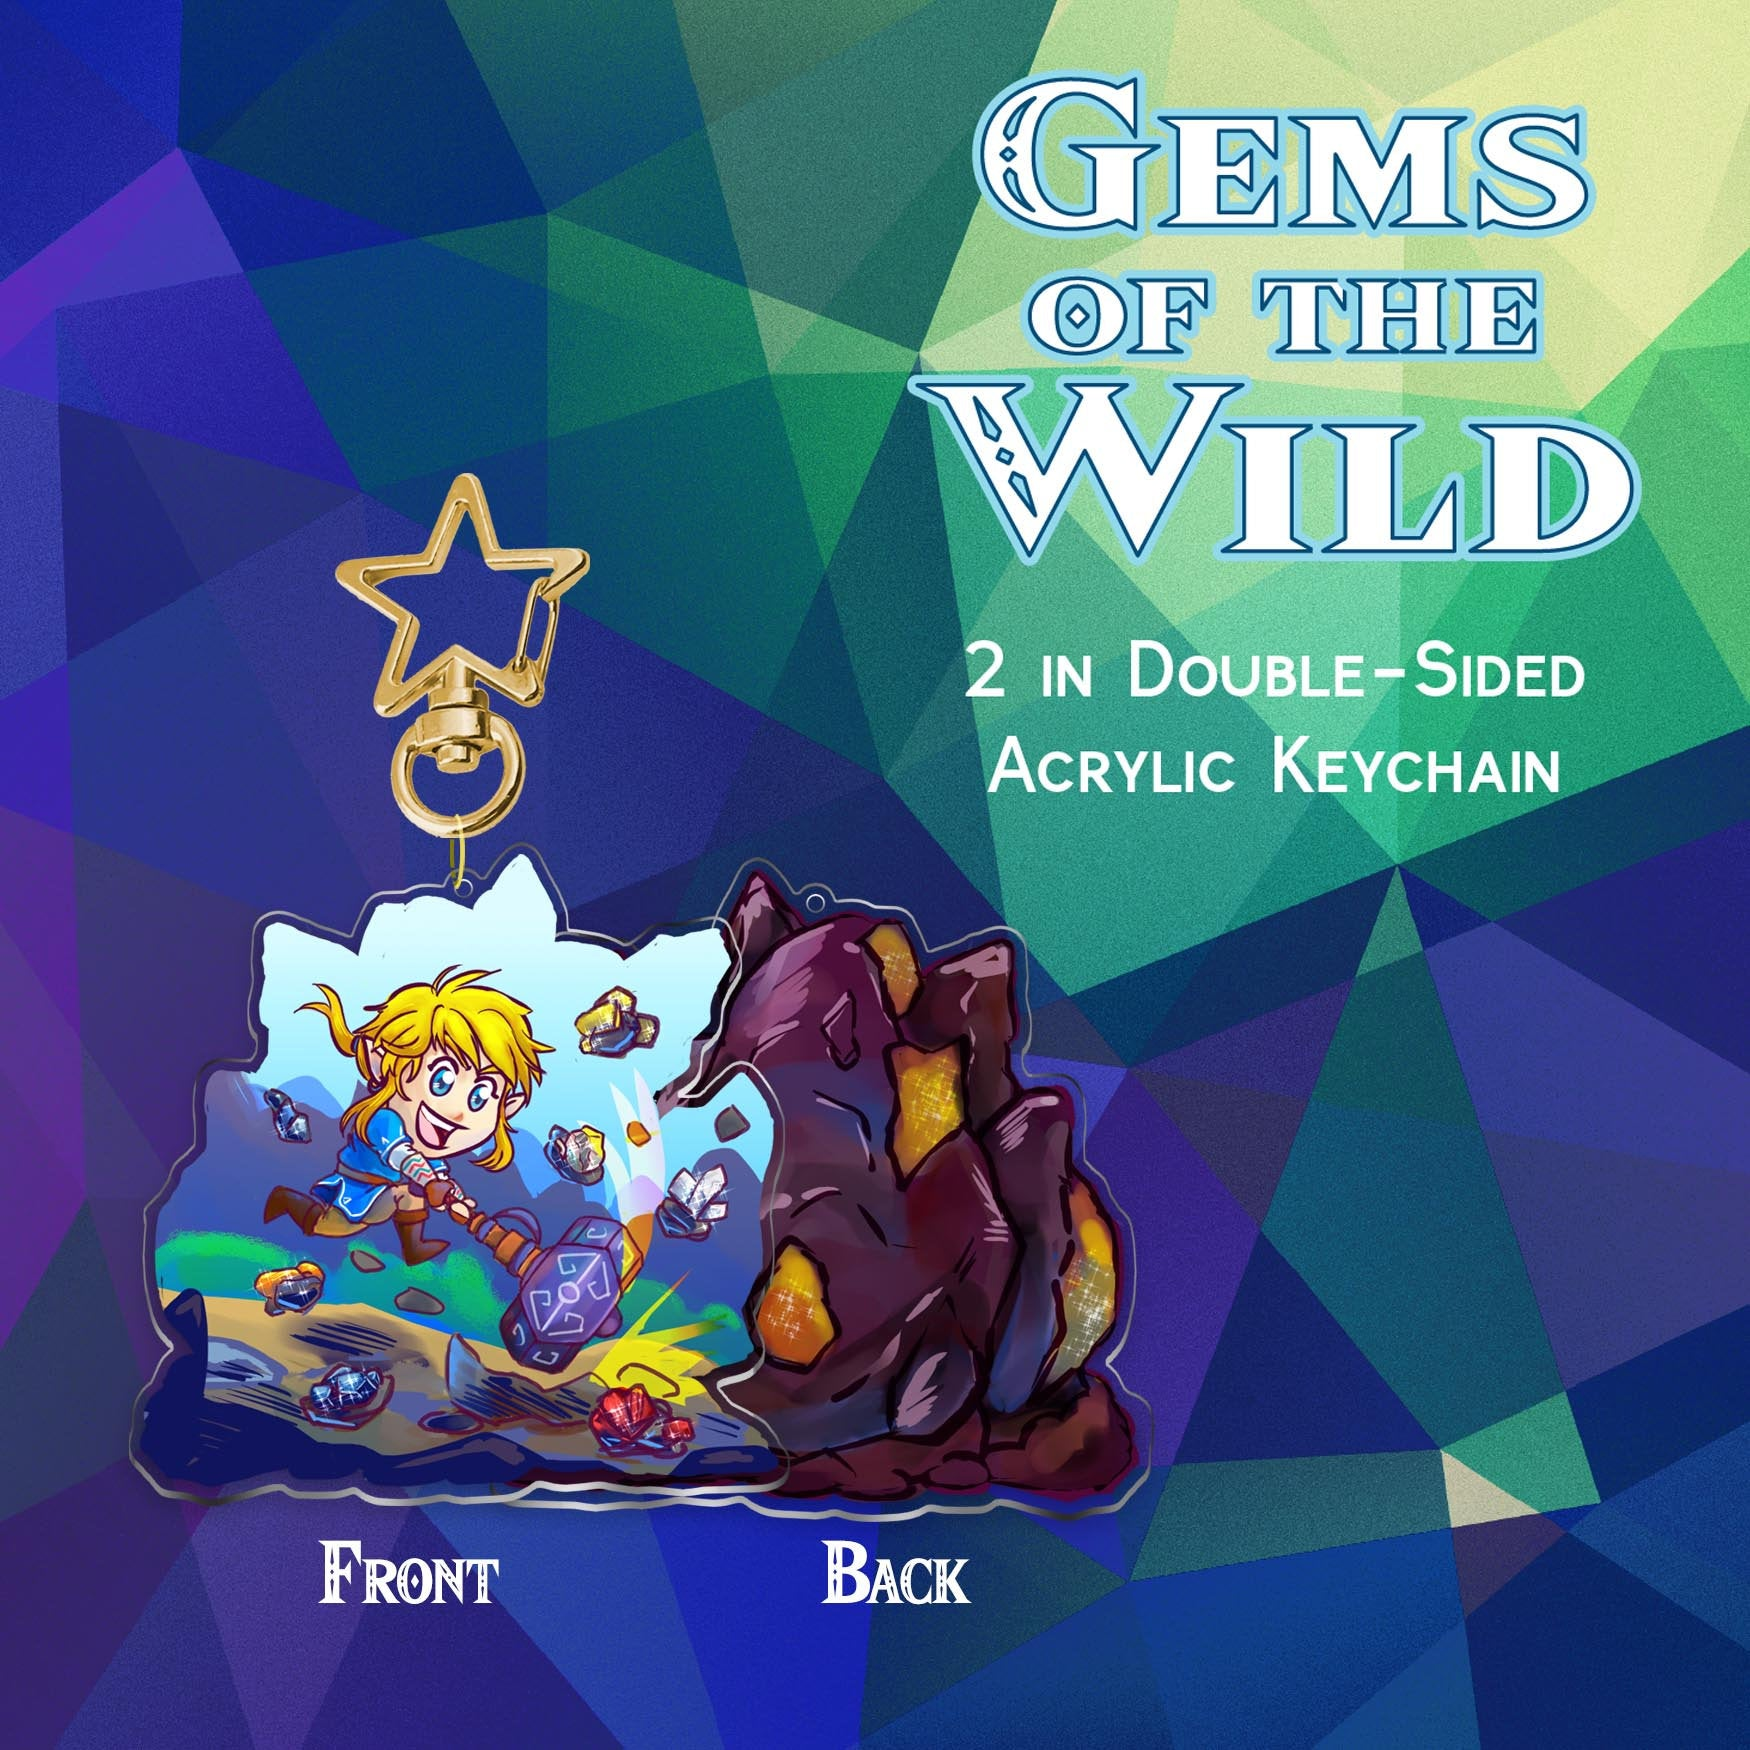 Gems of the Wild Keychain